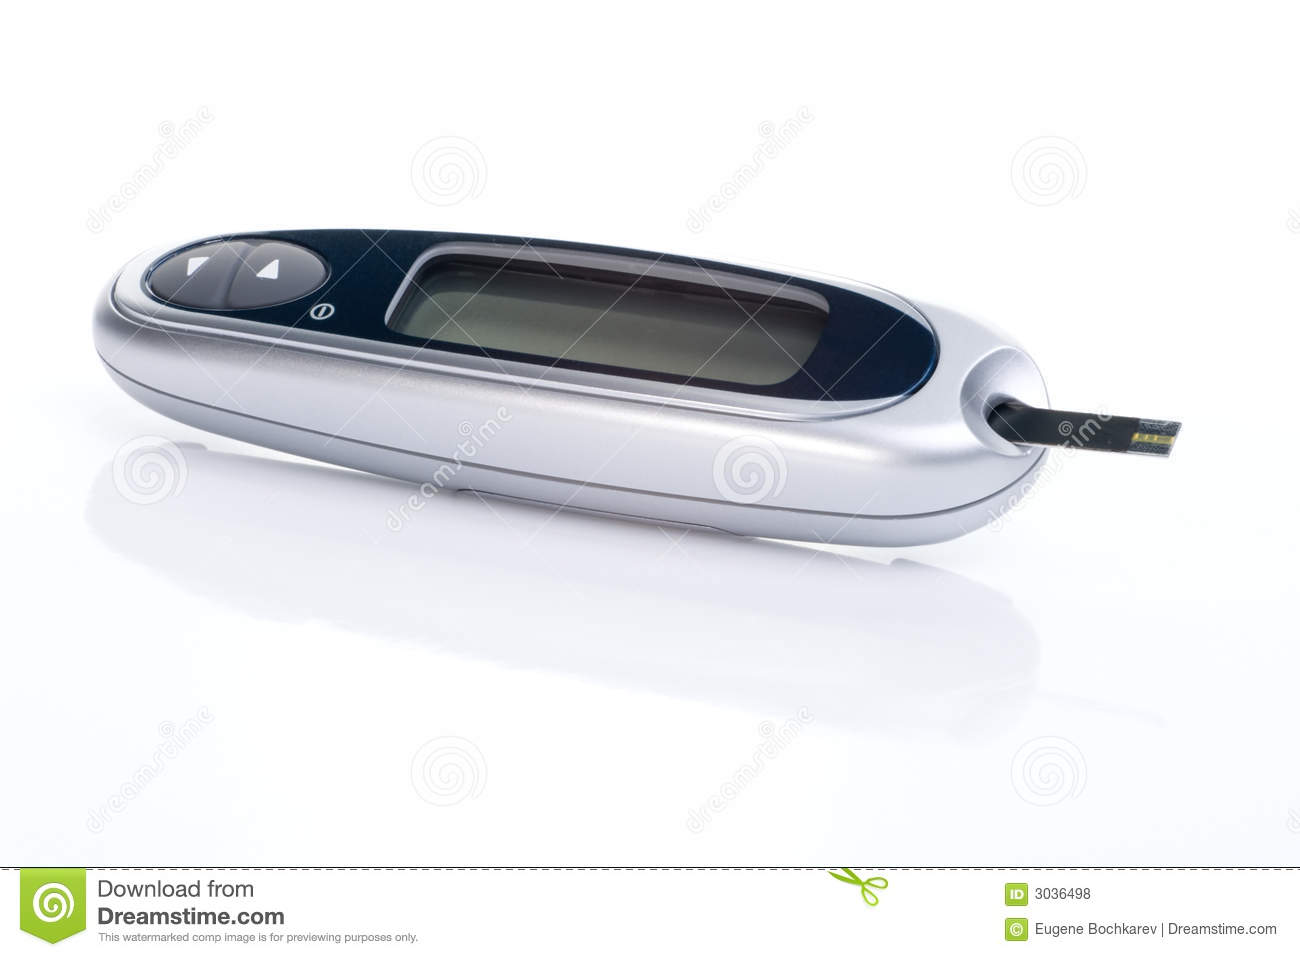 Meter for self checking blood glucose level for diabetics.